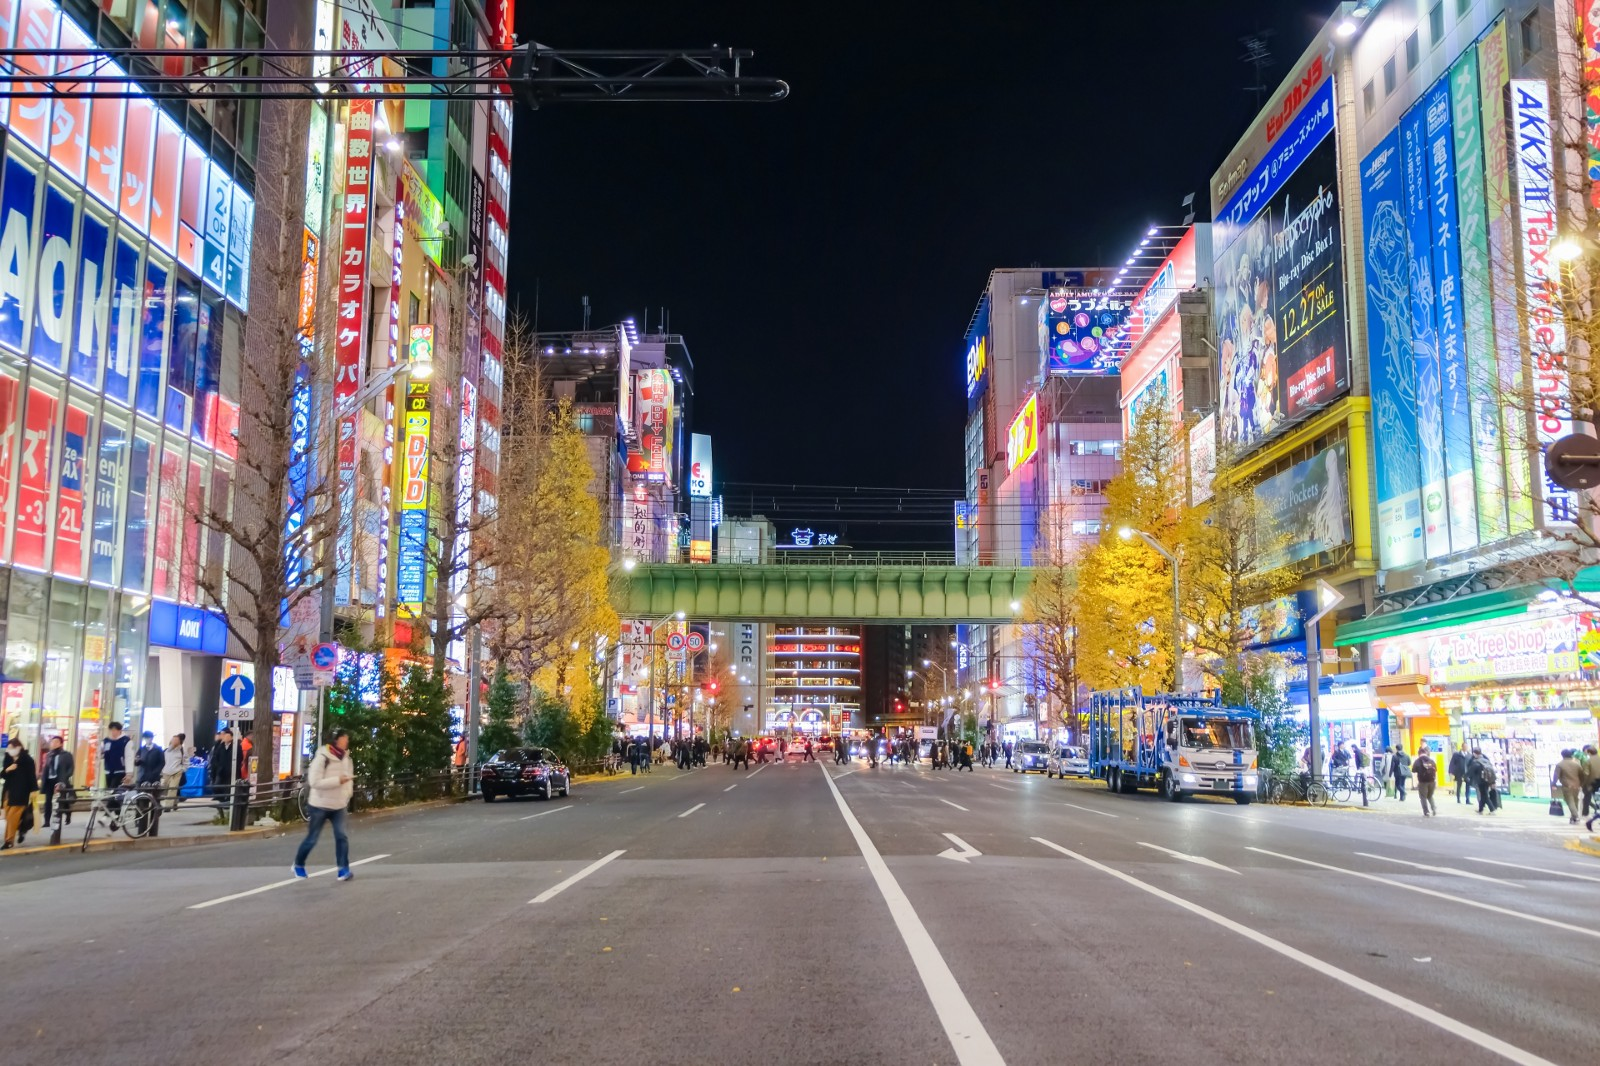 Akihabara Food Guide: What to Eat in Akihabara 2020